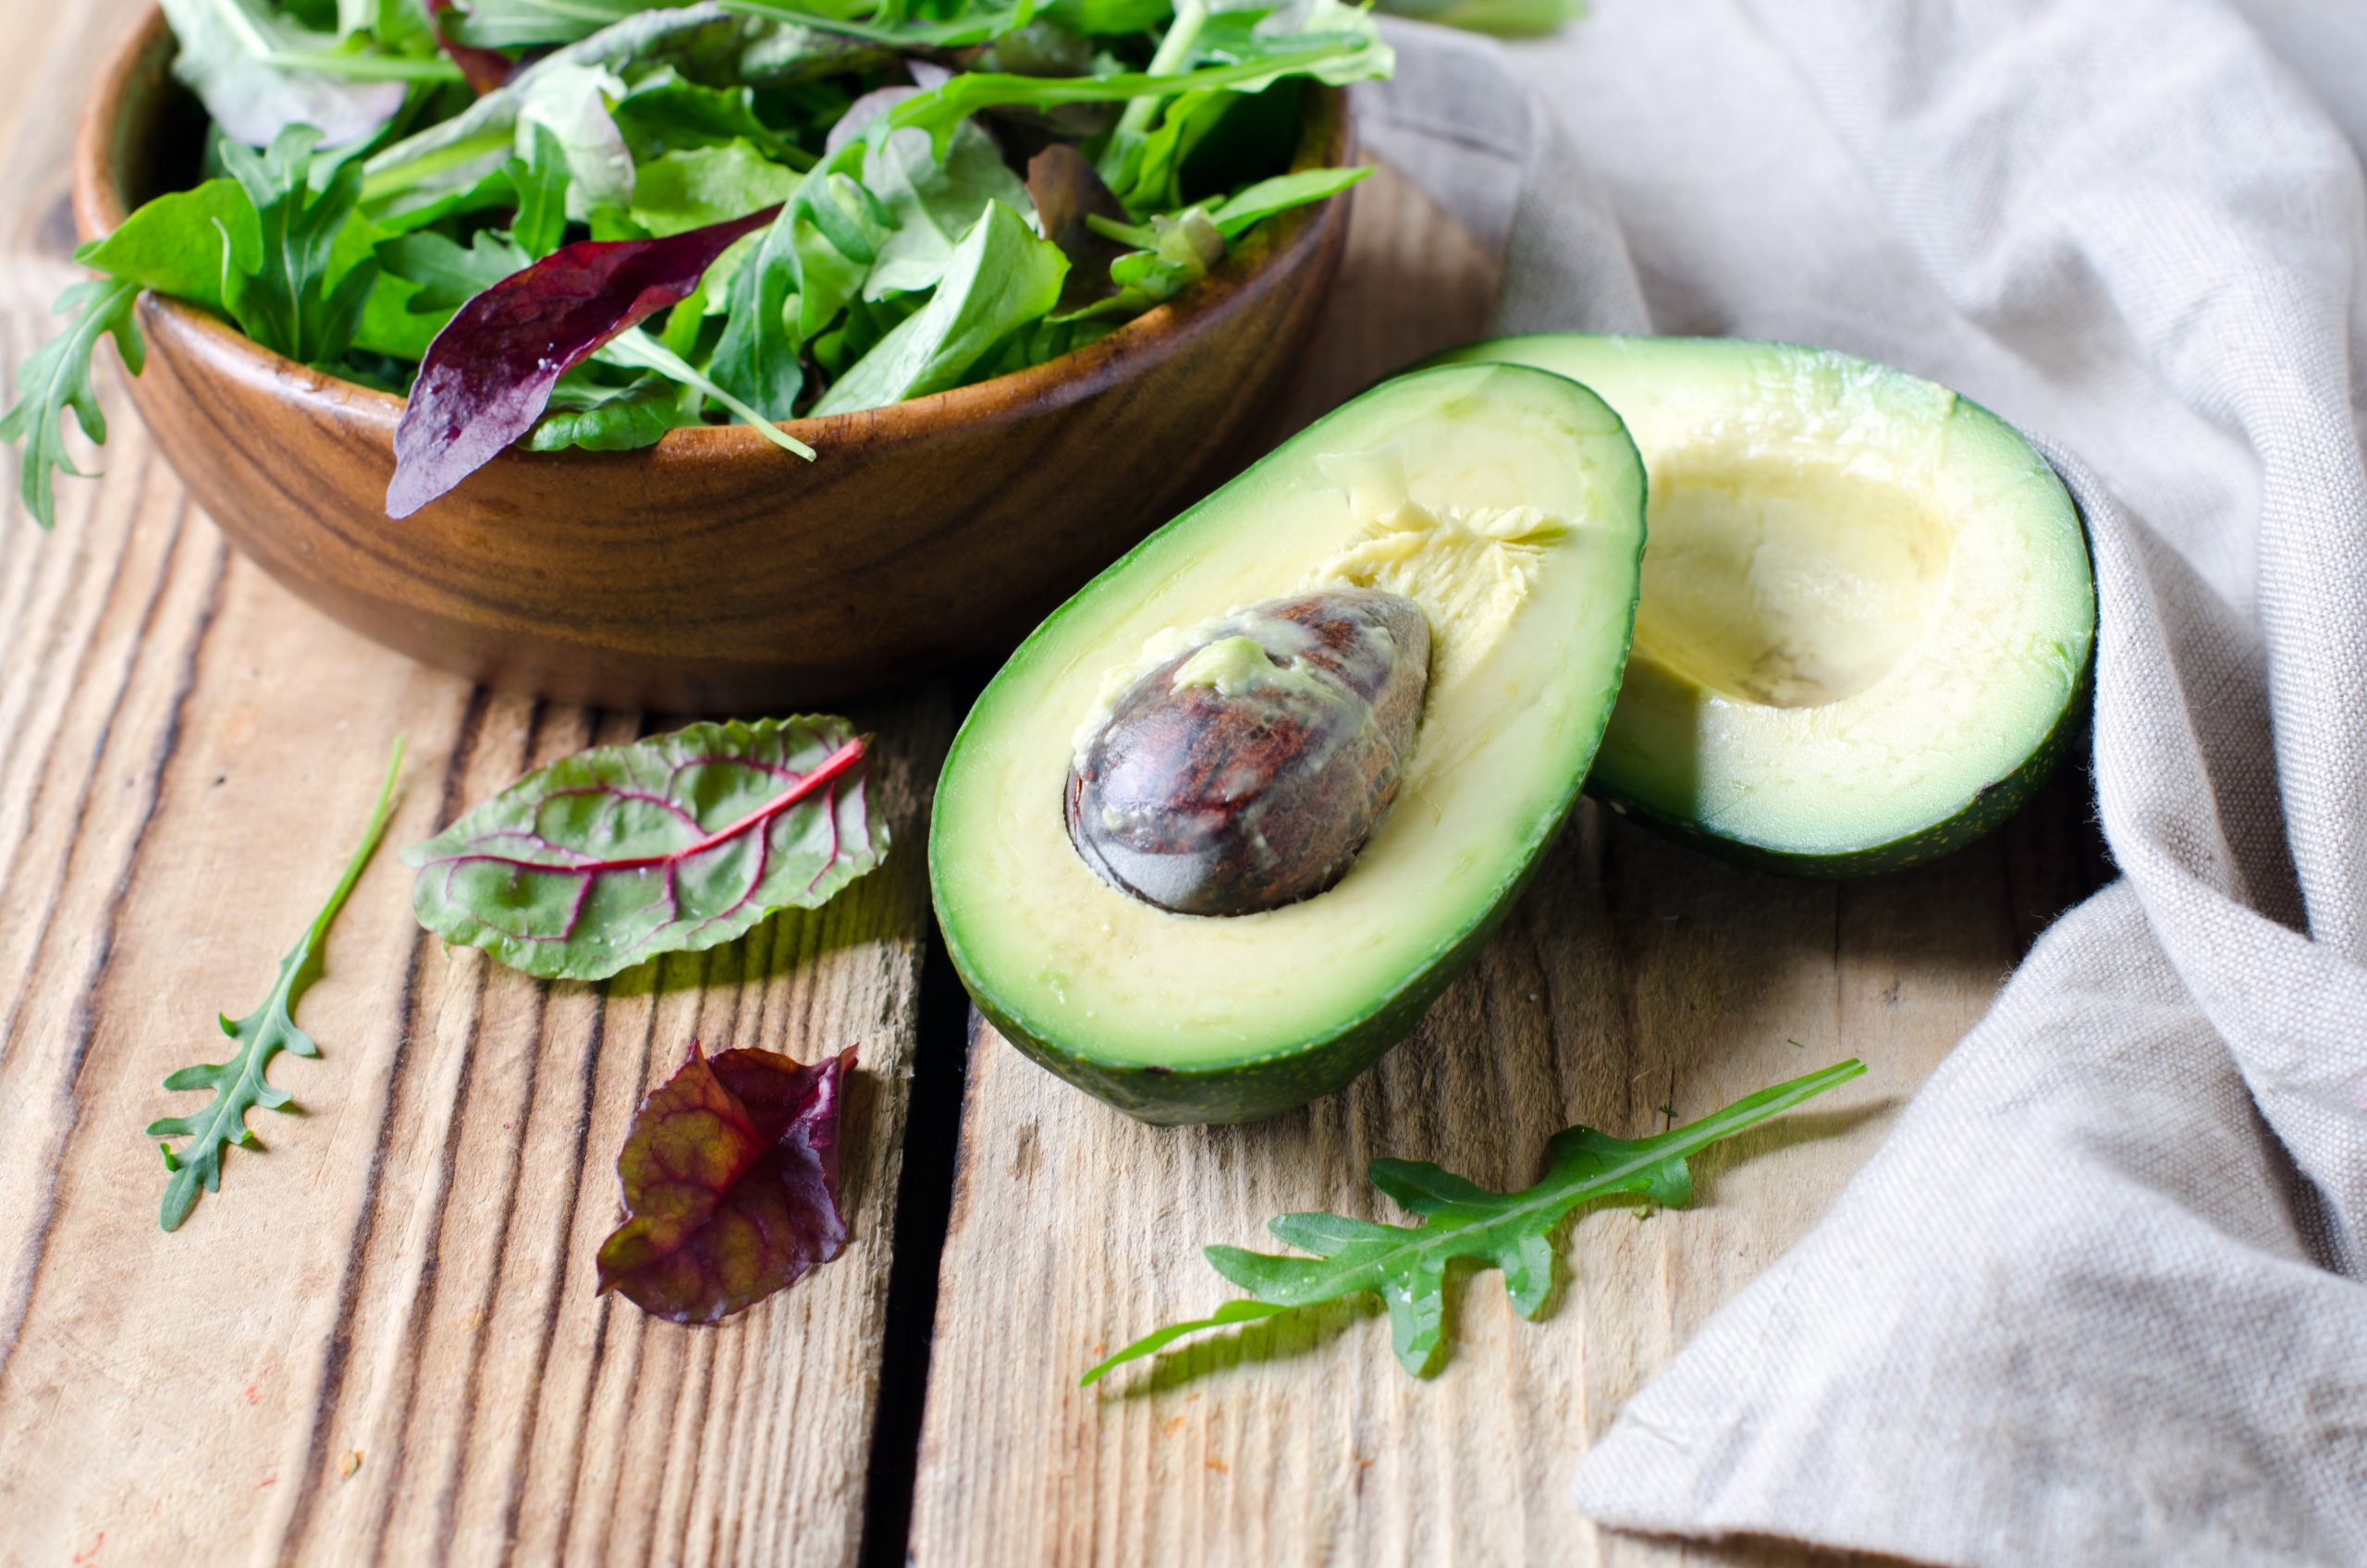 Healthy Fats like Avocados are beneficial for thyroid function. Check out all the best foods here at jenbaucom.com/best-thyroid-foods/